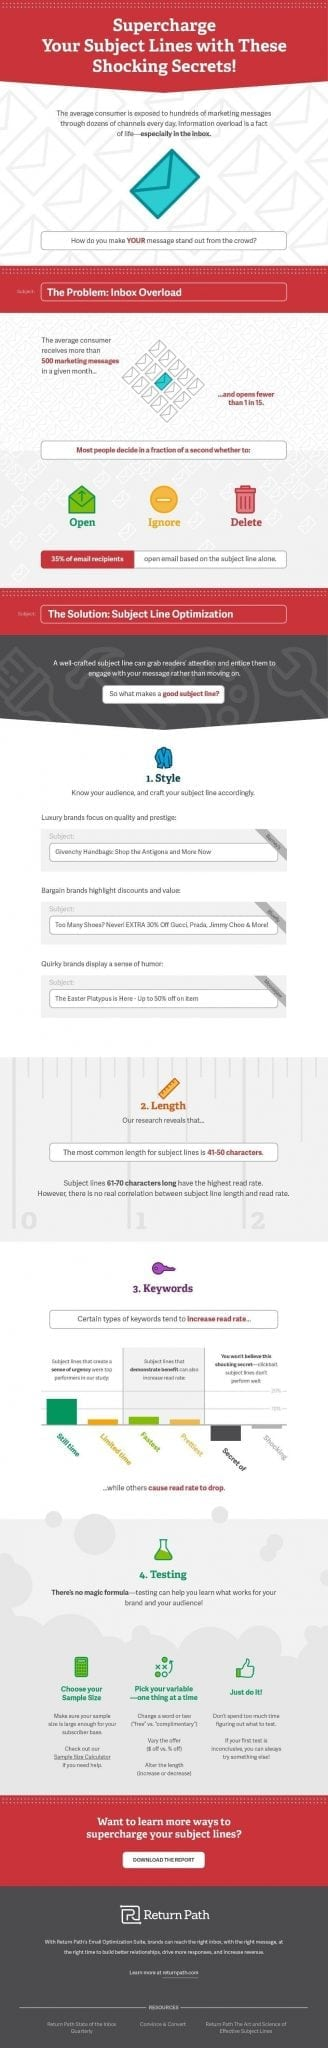 Subject-Line-Infographic-Updated-1